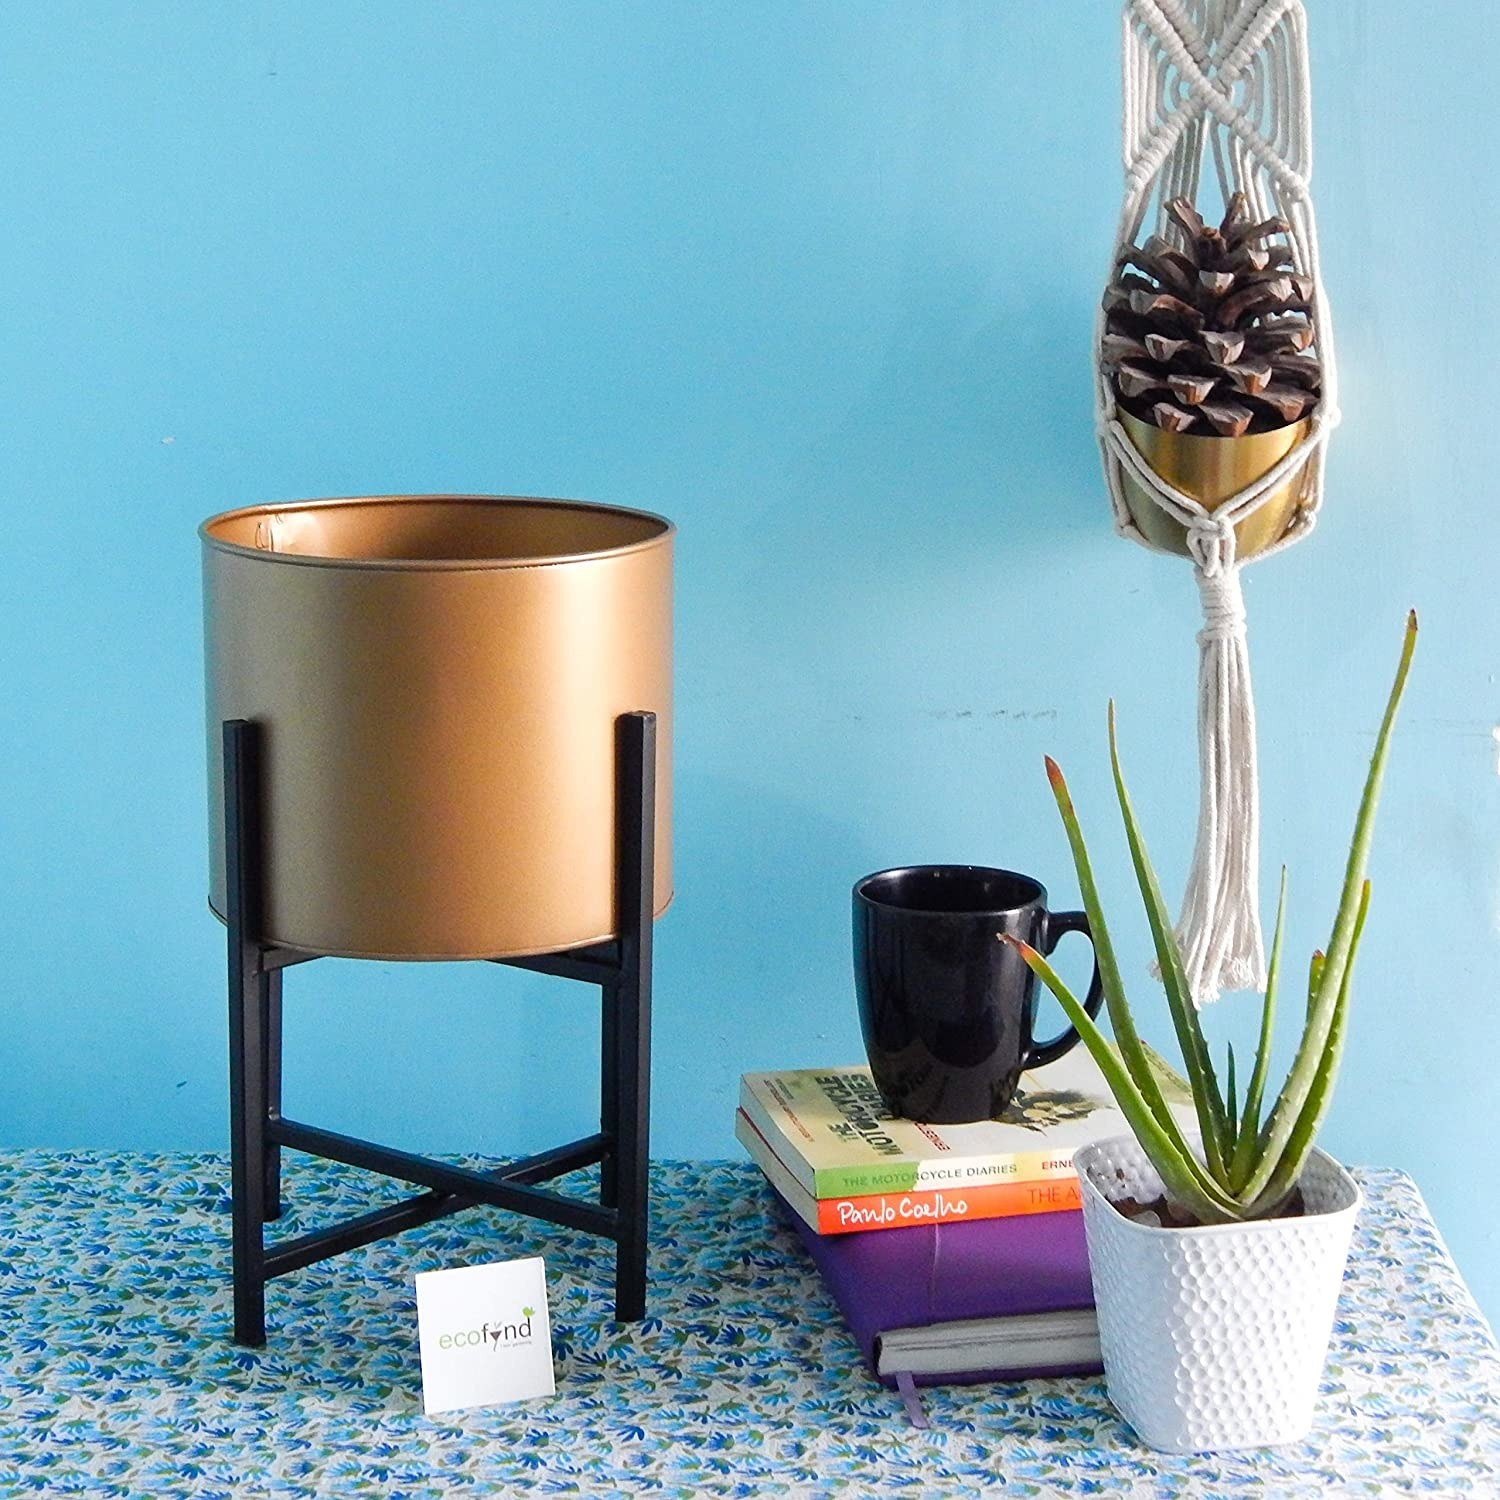 A gold cylindrical planter with a black stand.